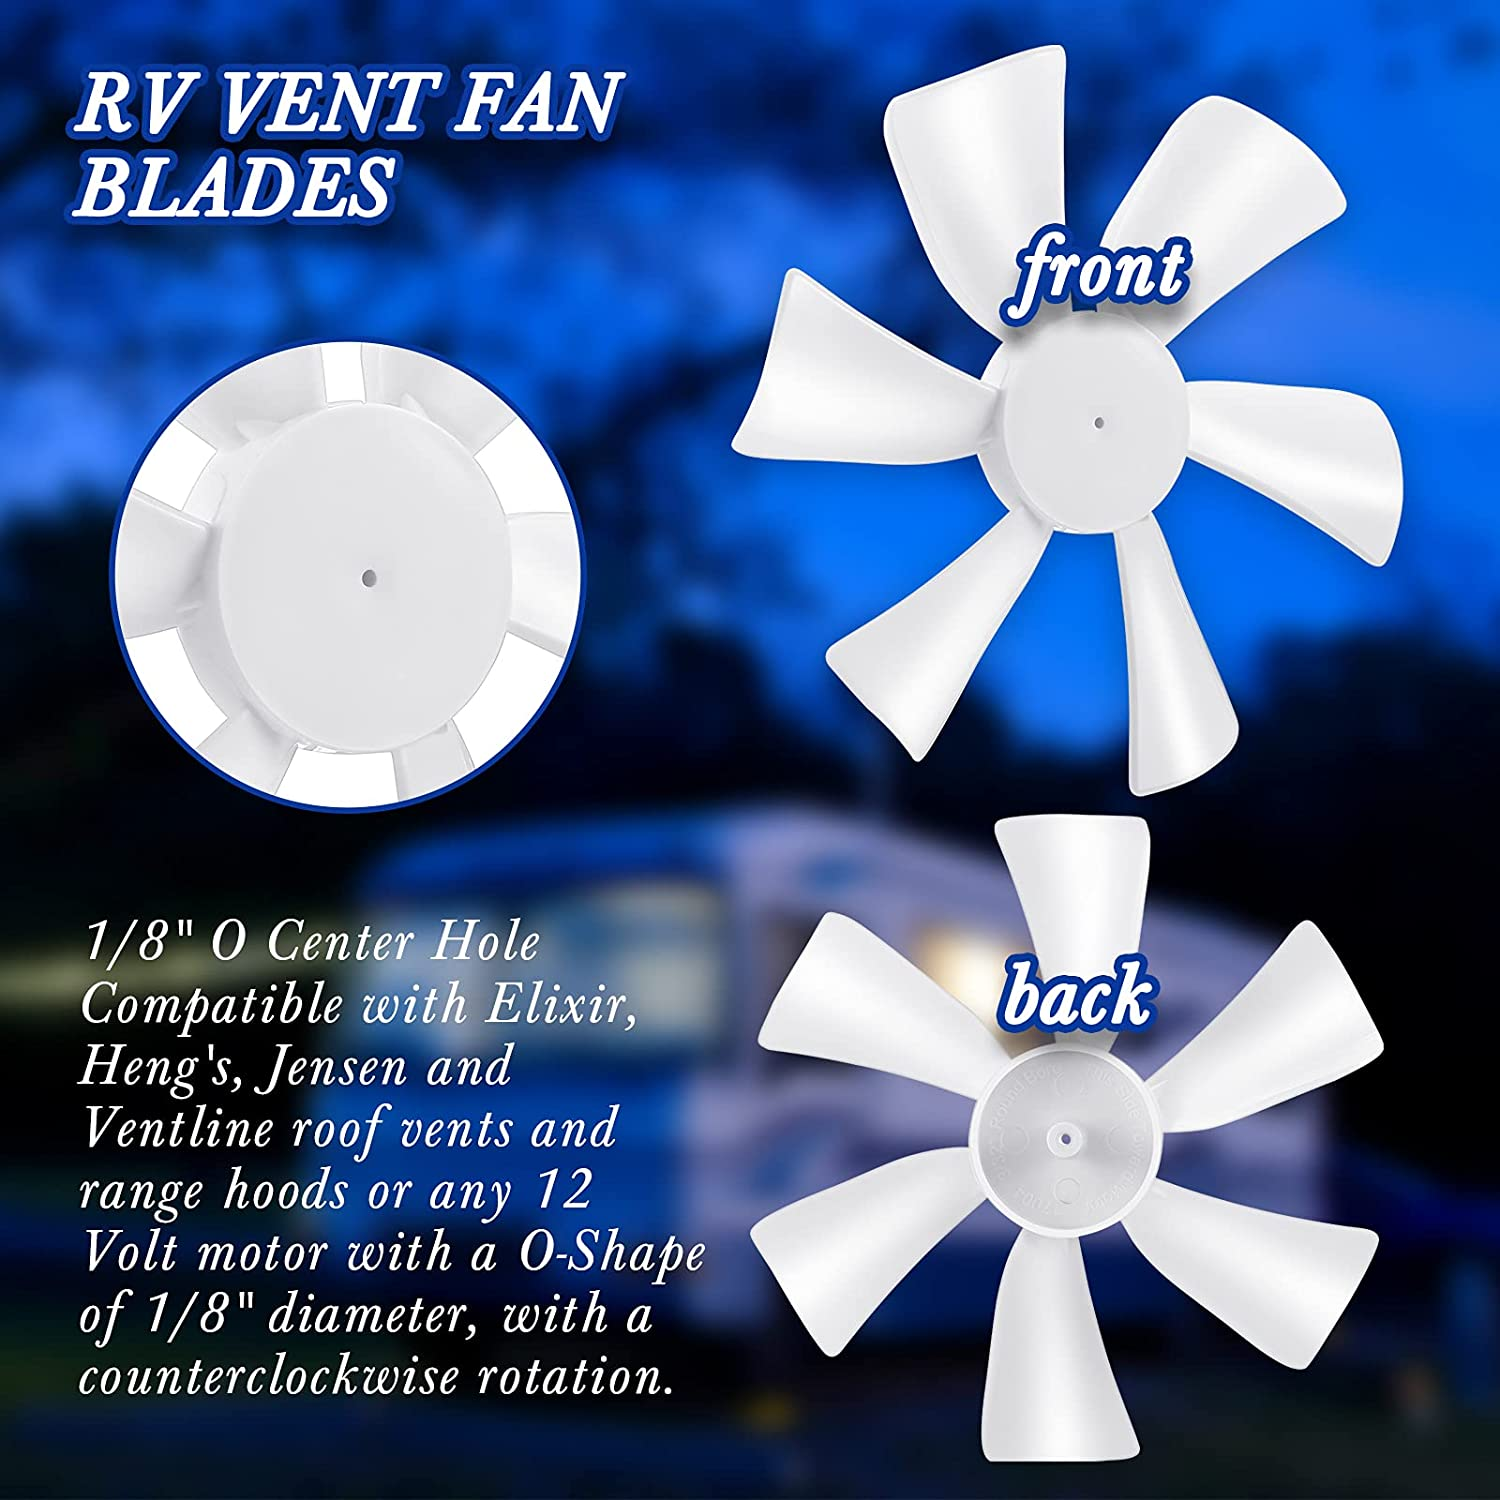 4 Pieces 6 Inch Replacement White Vent Fan Blades 2//25 Inch// 0.08 Inch Round Bore RV Vent Fan Blades RV Bathroom Vent Fan Exhaust Fan Blade Compatible with 12 Volt Motors with 0.094 Inch Round Shaft